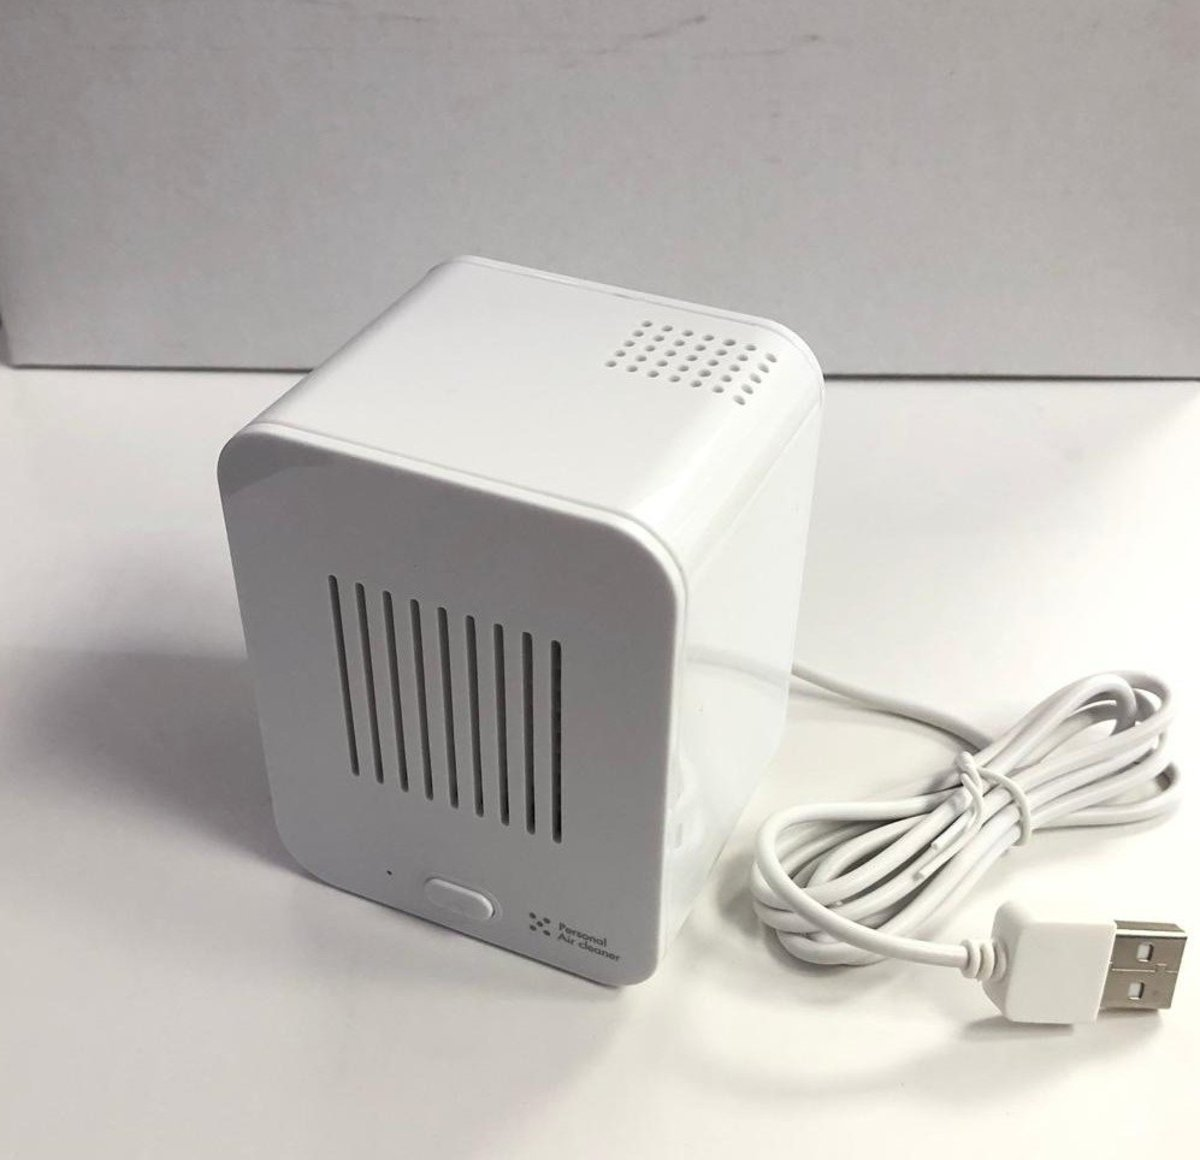 [HK Warranty] M7070 HEPA Personal USB Air Claner White